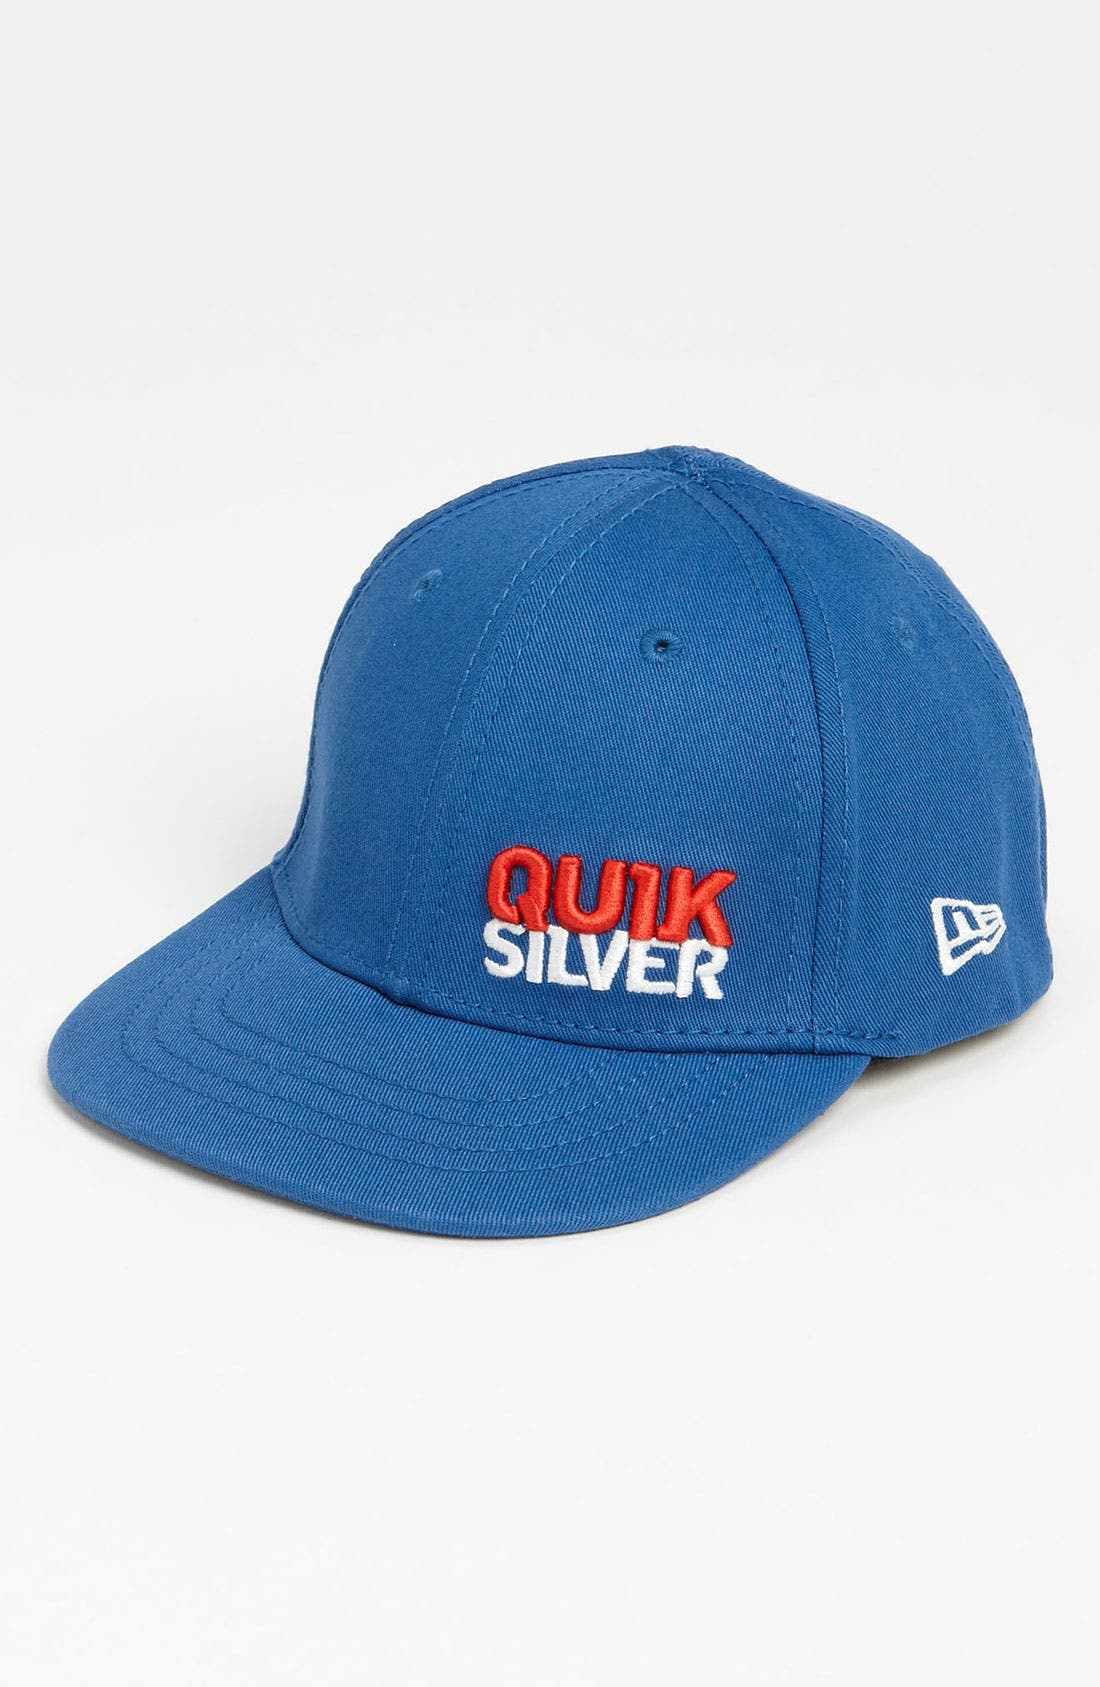 Alternate Image 1 Selected - Quiksilver 'Strands' Baseball Cap (Toddler)